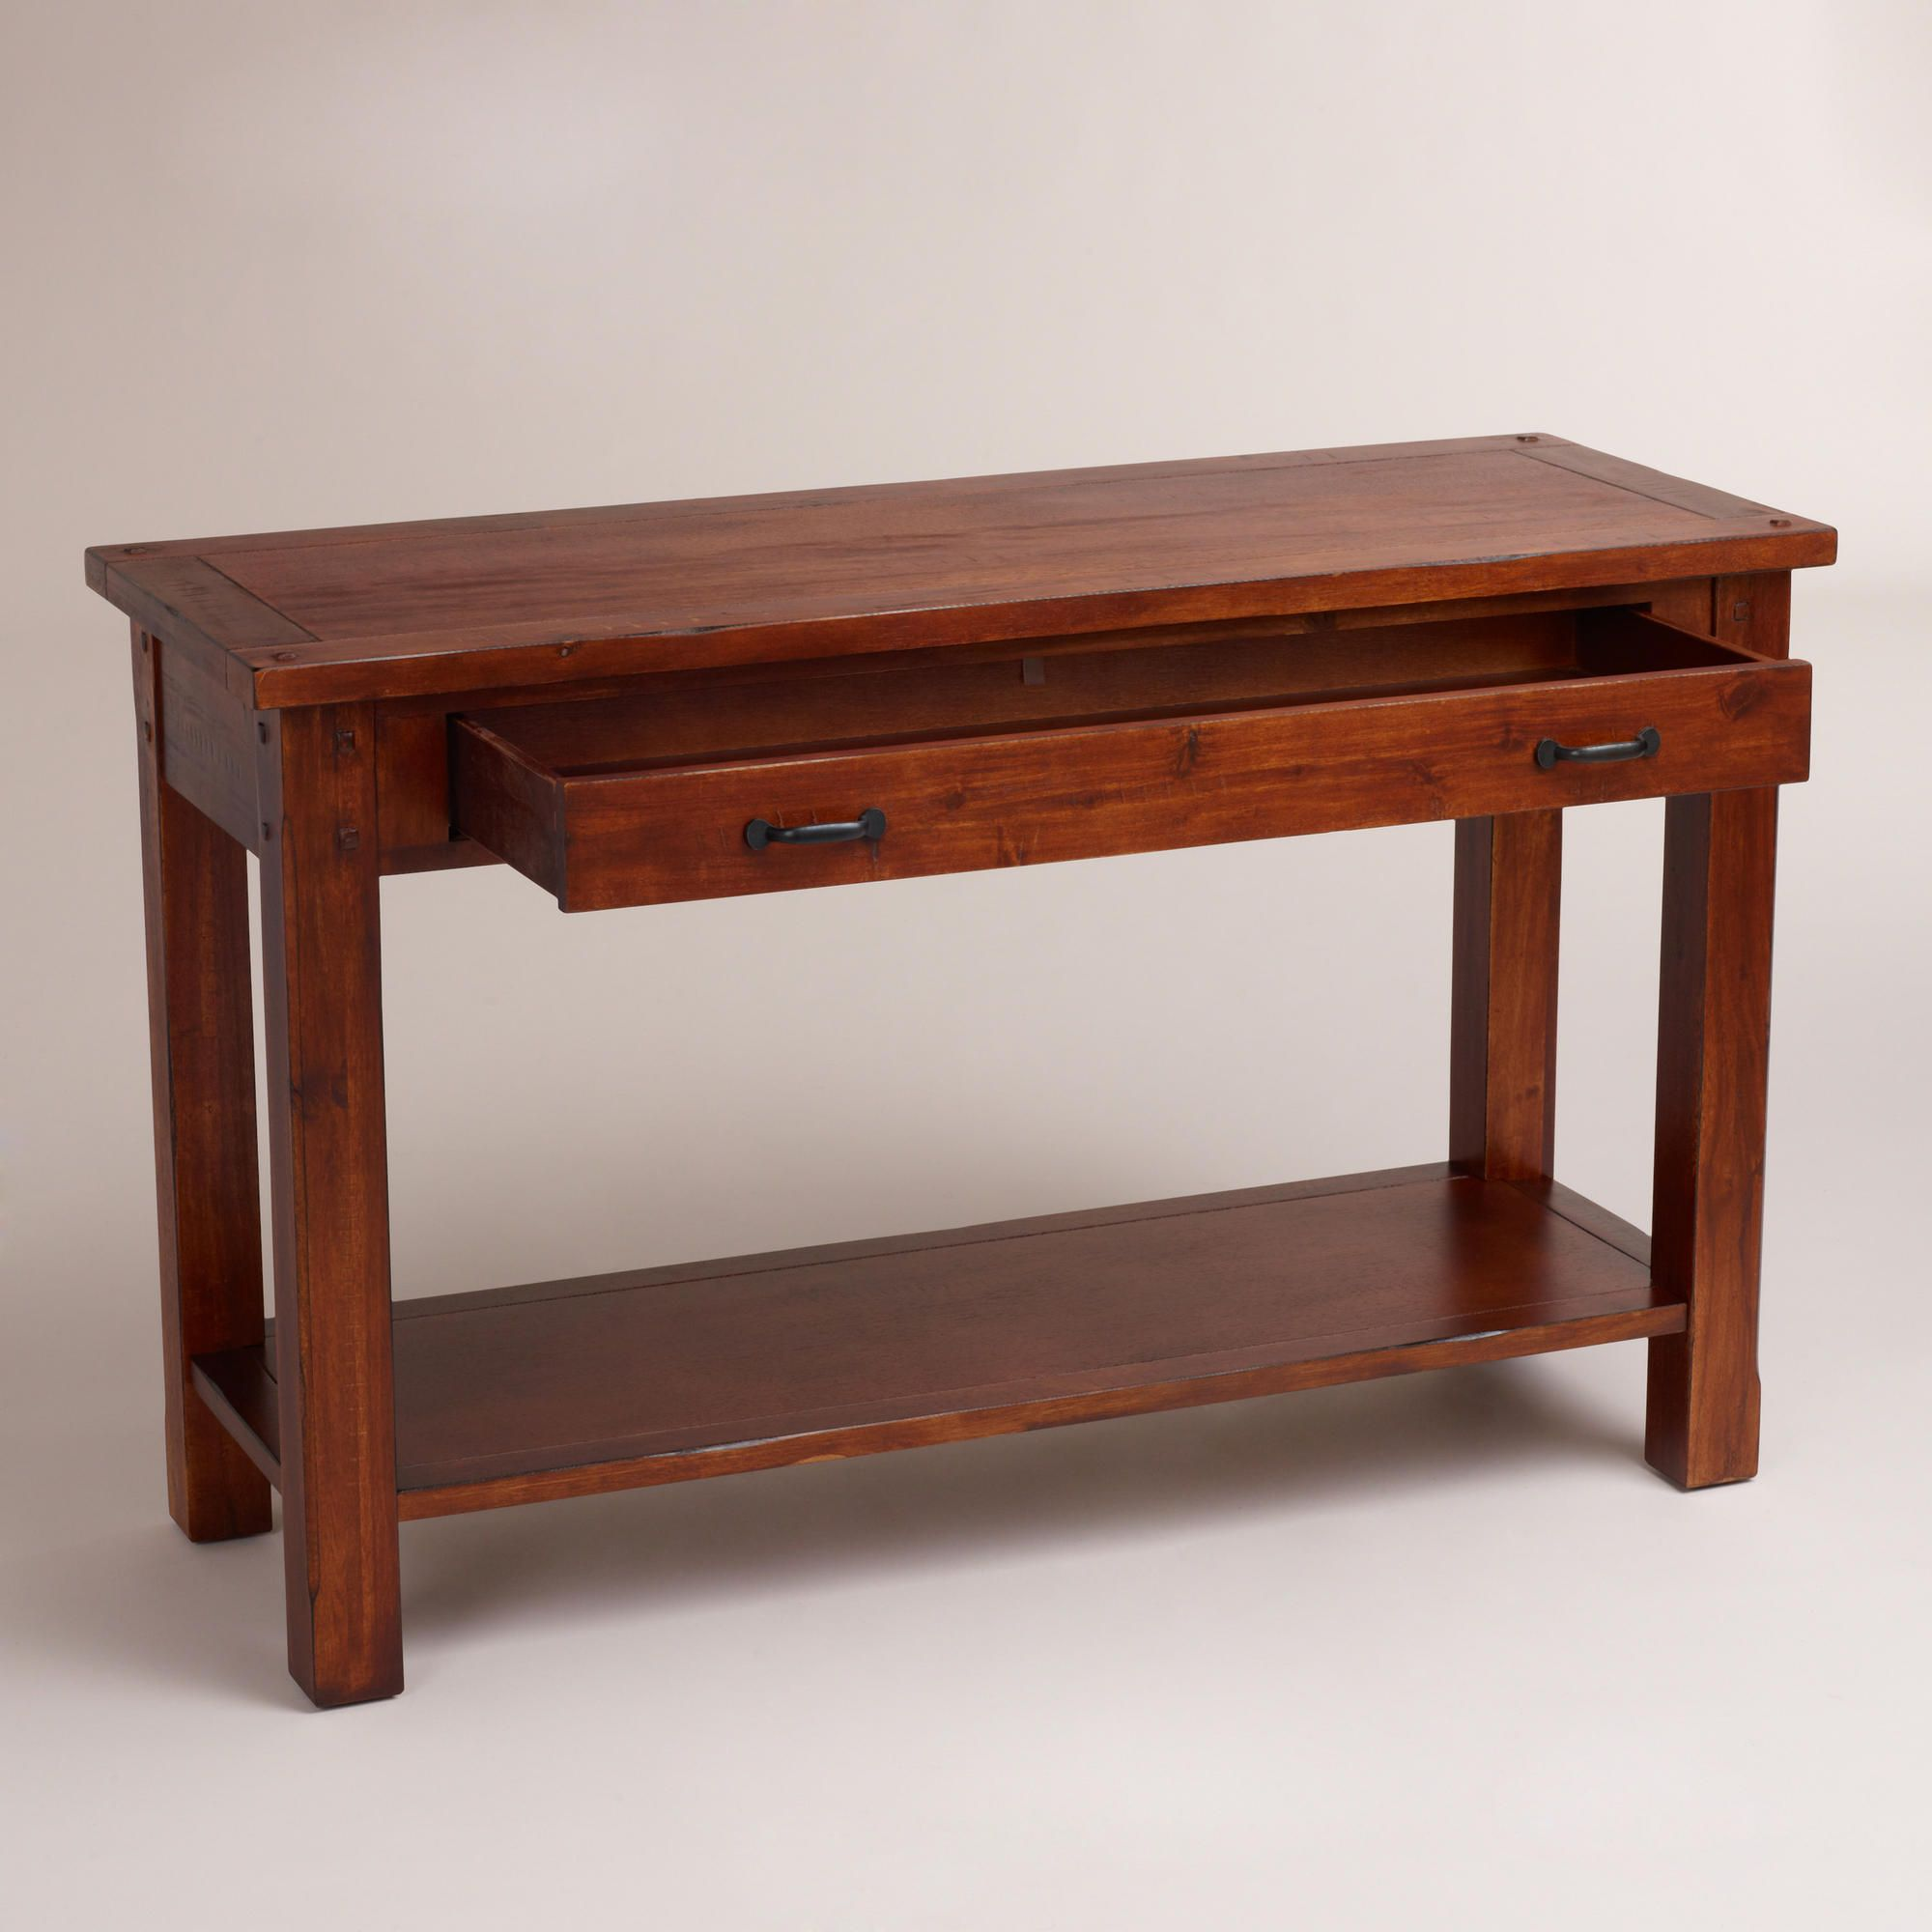 Sofa Table Pinterest: World Market Sofa Table Entry Way Everette Foyer Table